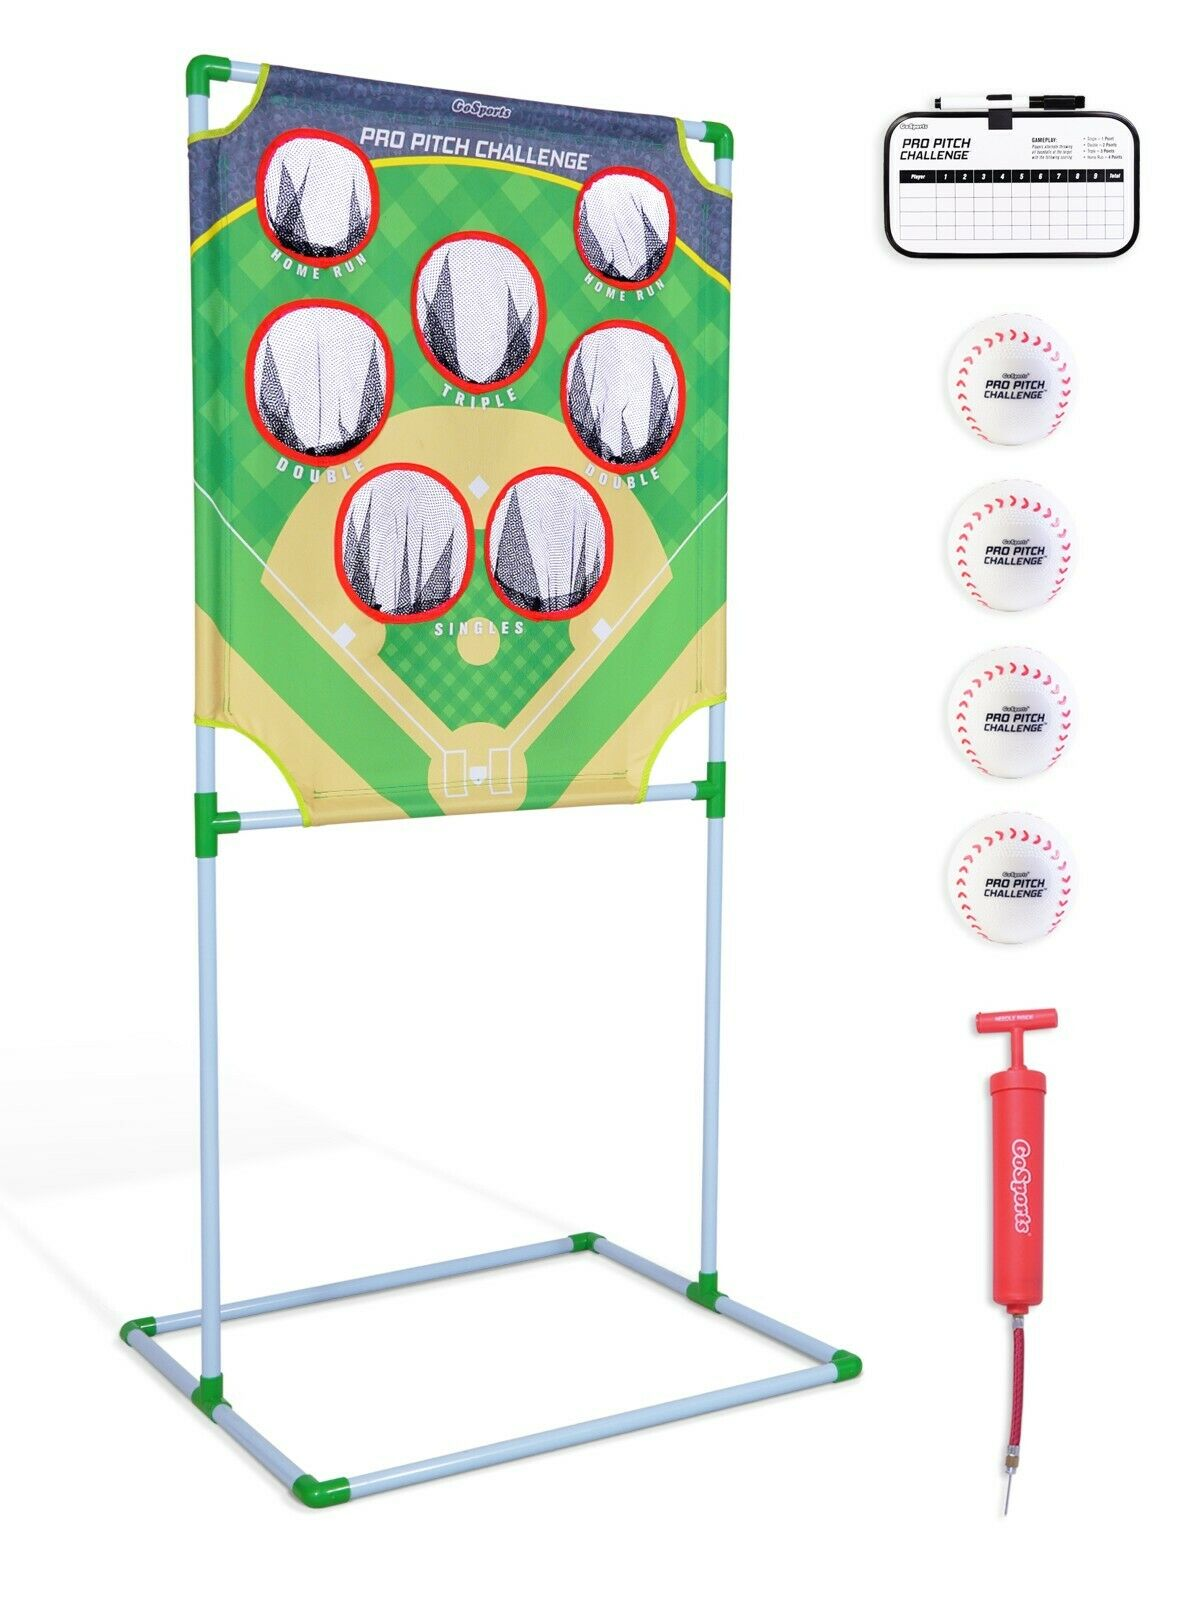 GoSports Pro Pitch  Challenge Baseball Toss Game Set Fun for Baseball Fans  incentive promotionals